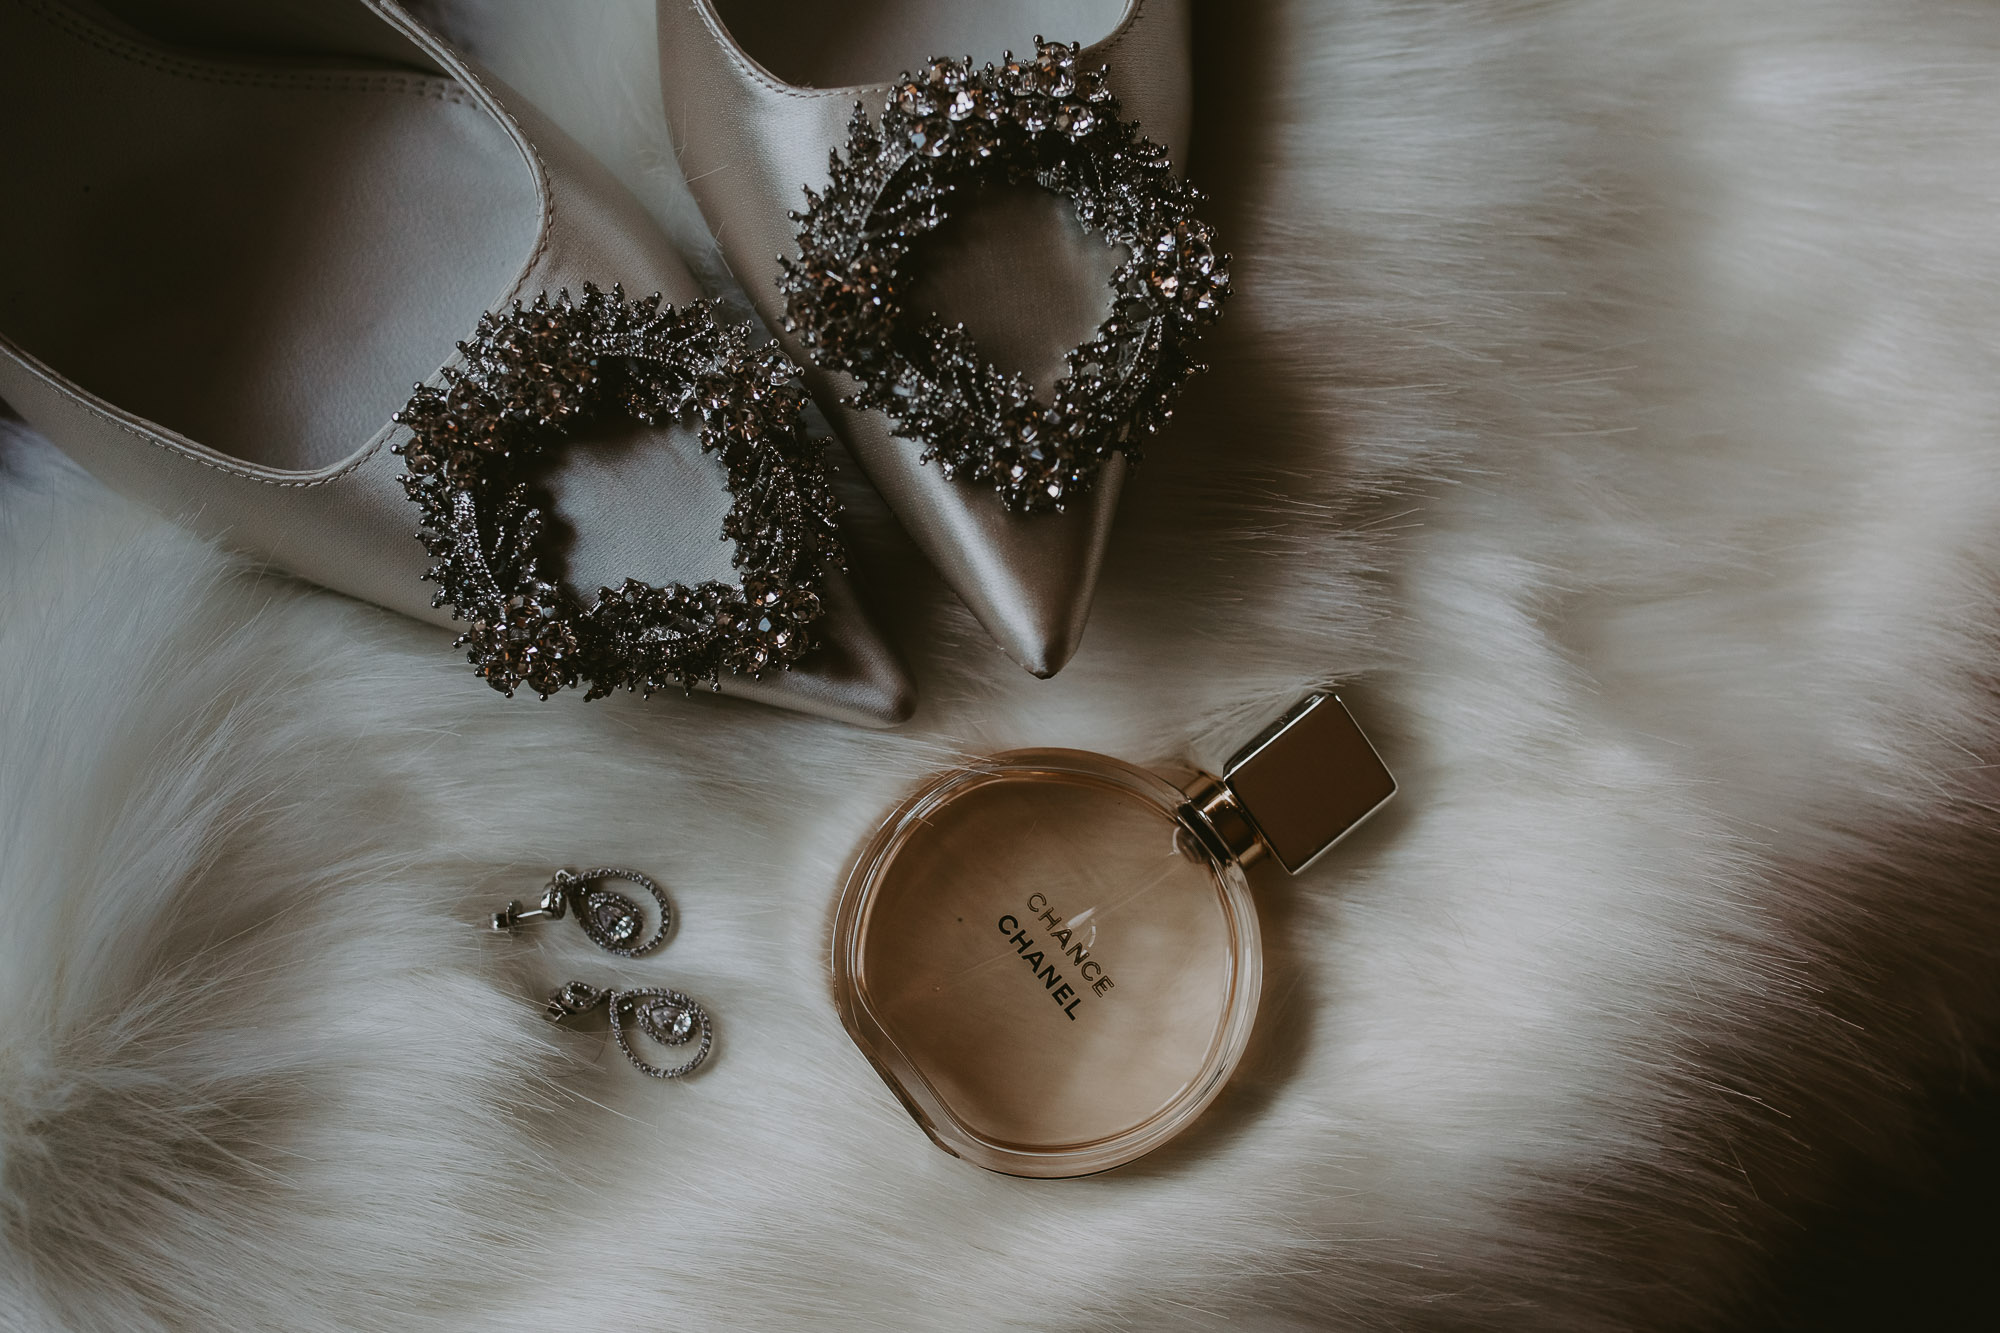 Wedding accessories, close up of Manolo Blahnik Hangisi bridal shoes, Chance Chanel perfume, earrings, white winter boleros